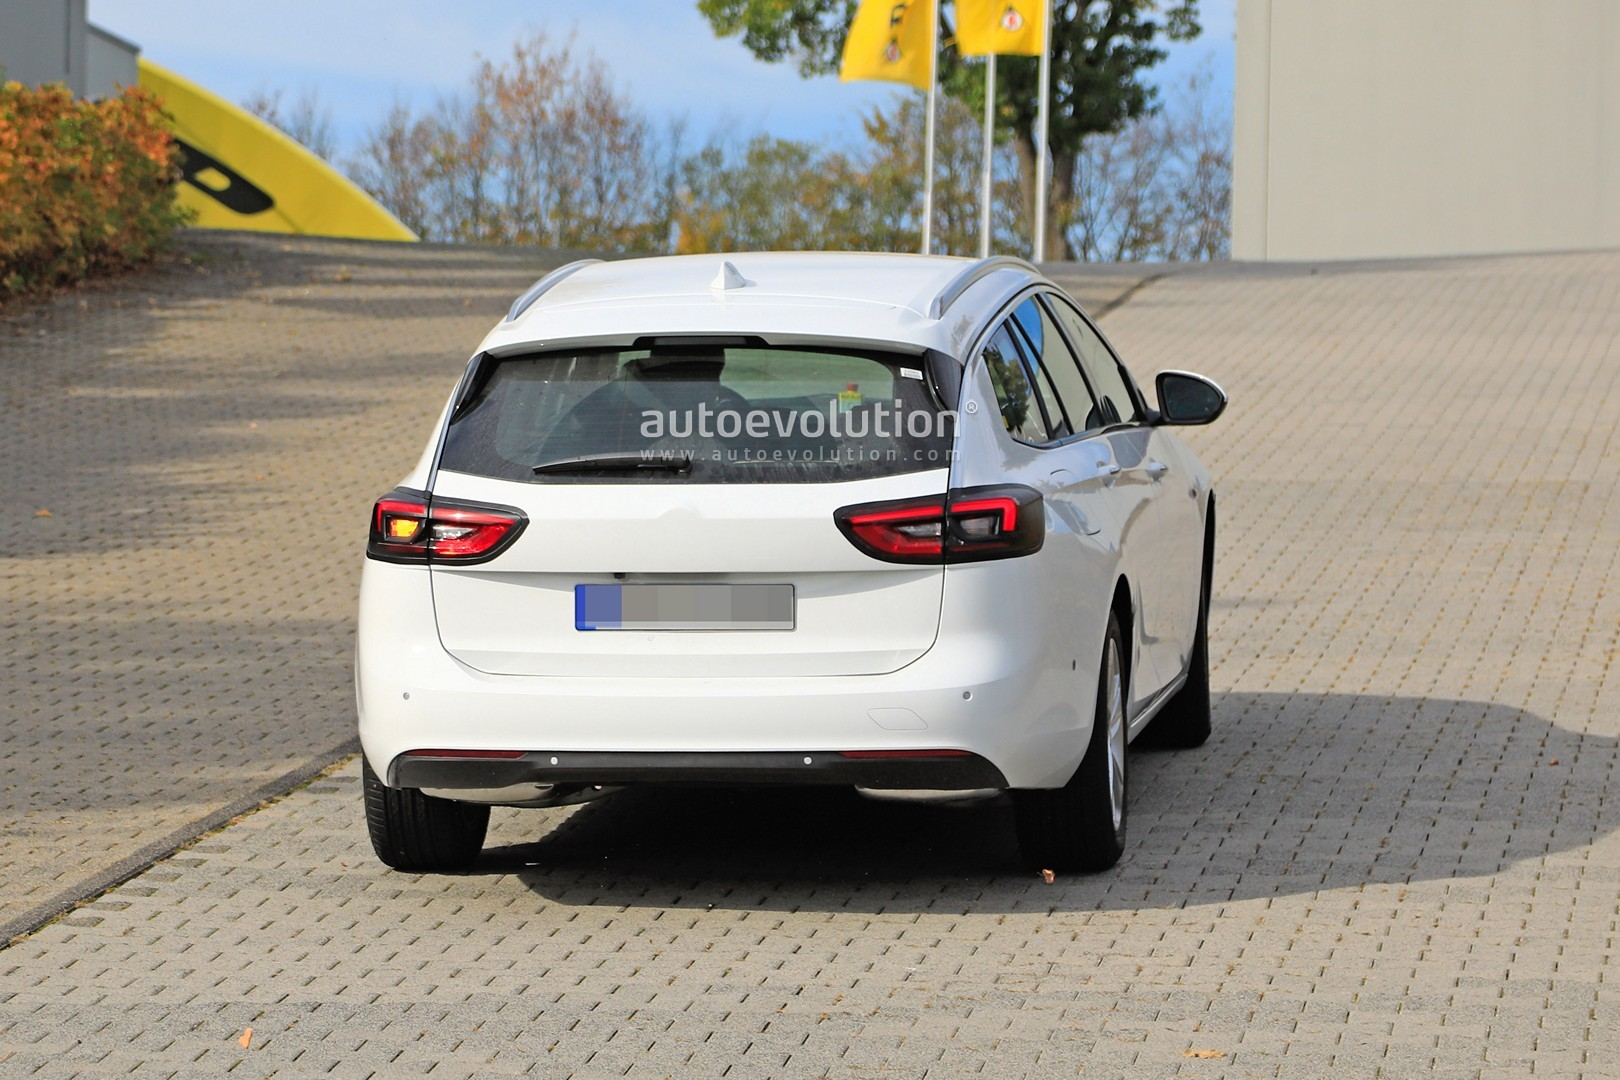 2020 - [Opel] Insignia Grand Sport Restylée  2020-opel-insignia-facelift-makes-spyshots-debut-as-camouflaged-wagon_9